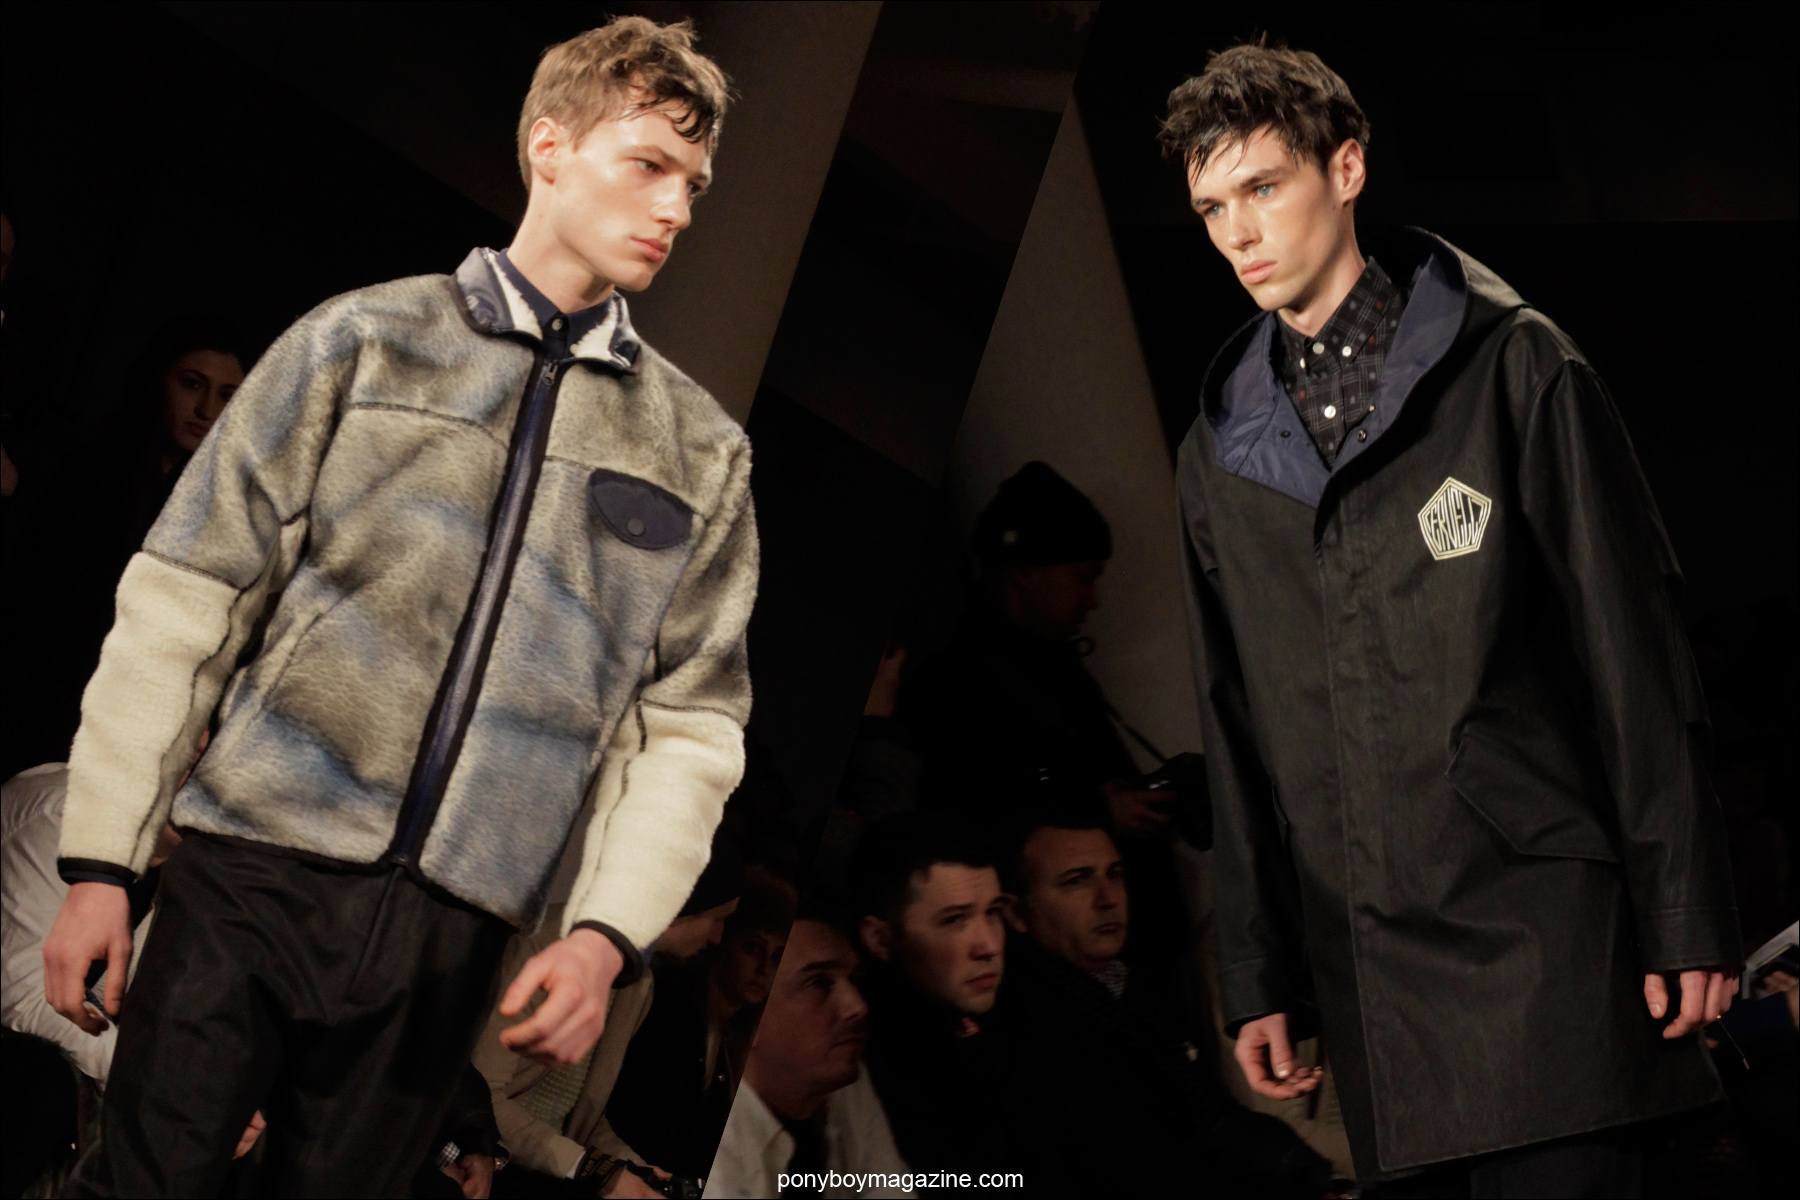 Menswear collection at New York Fashion Week. Patrik Ervell A/W 2014, photographed by Alexander Thompson for Ponyboy Magazine.